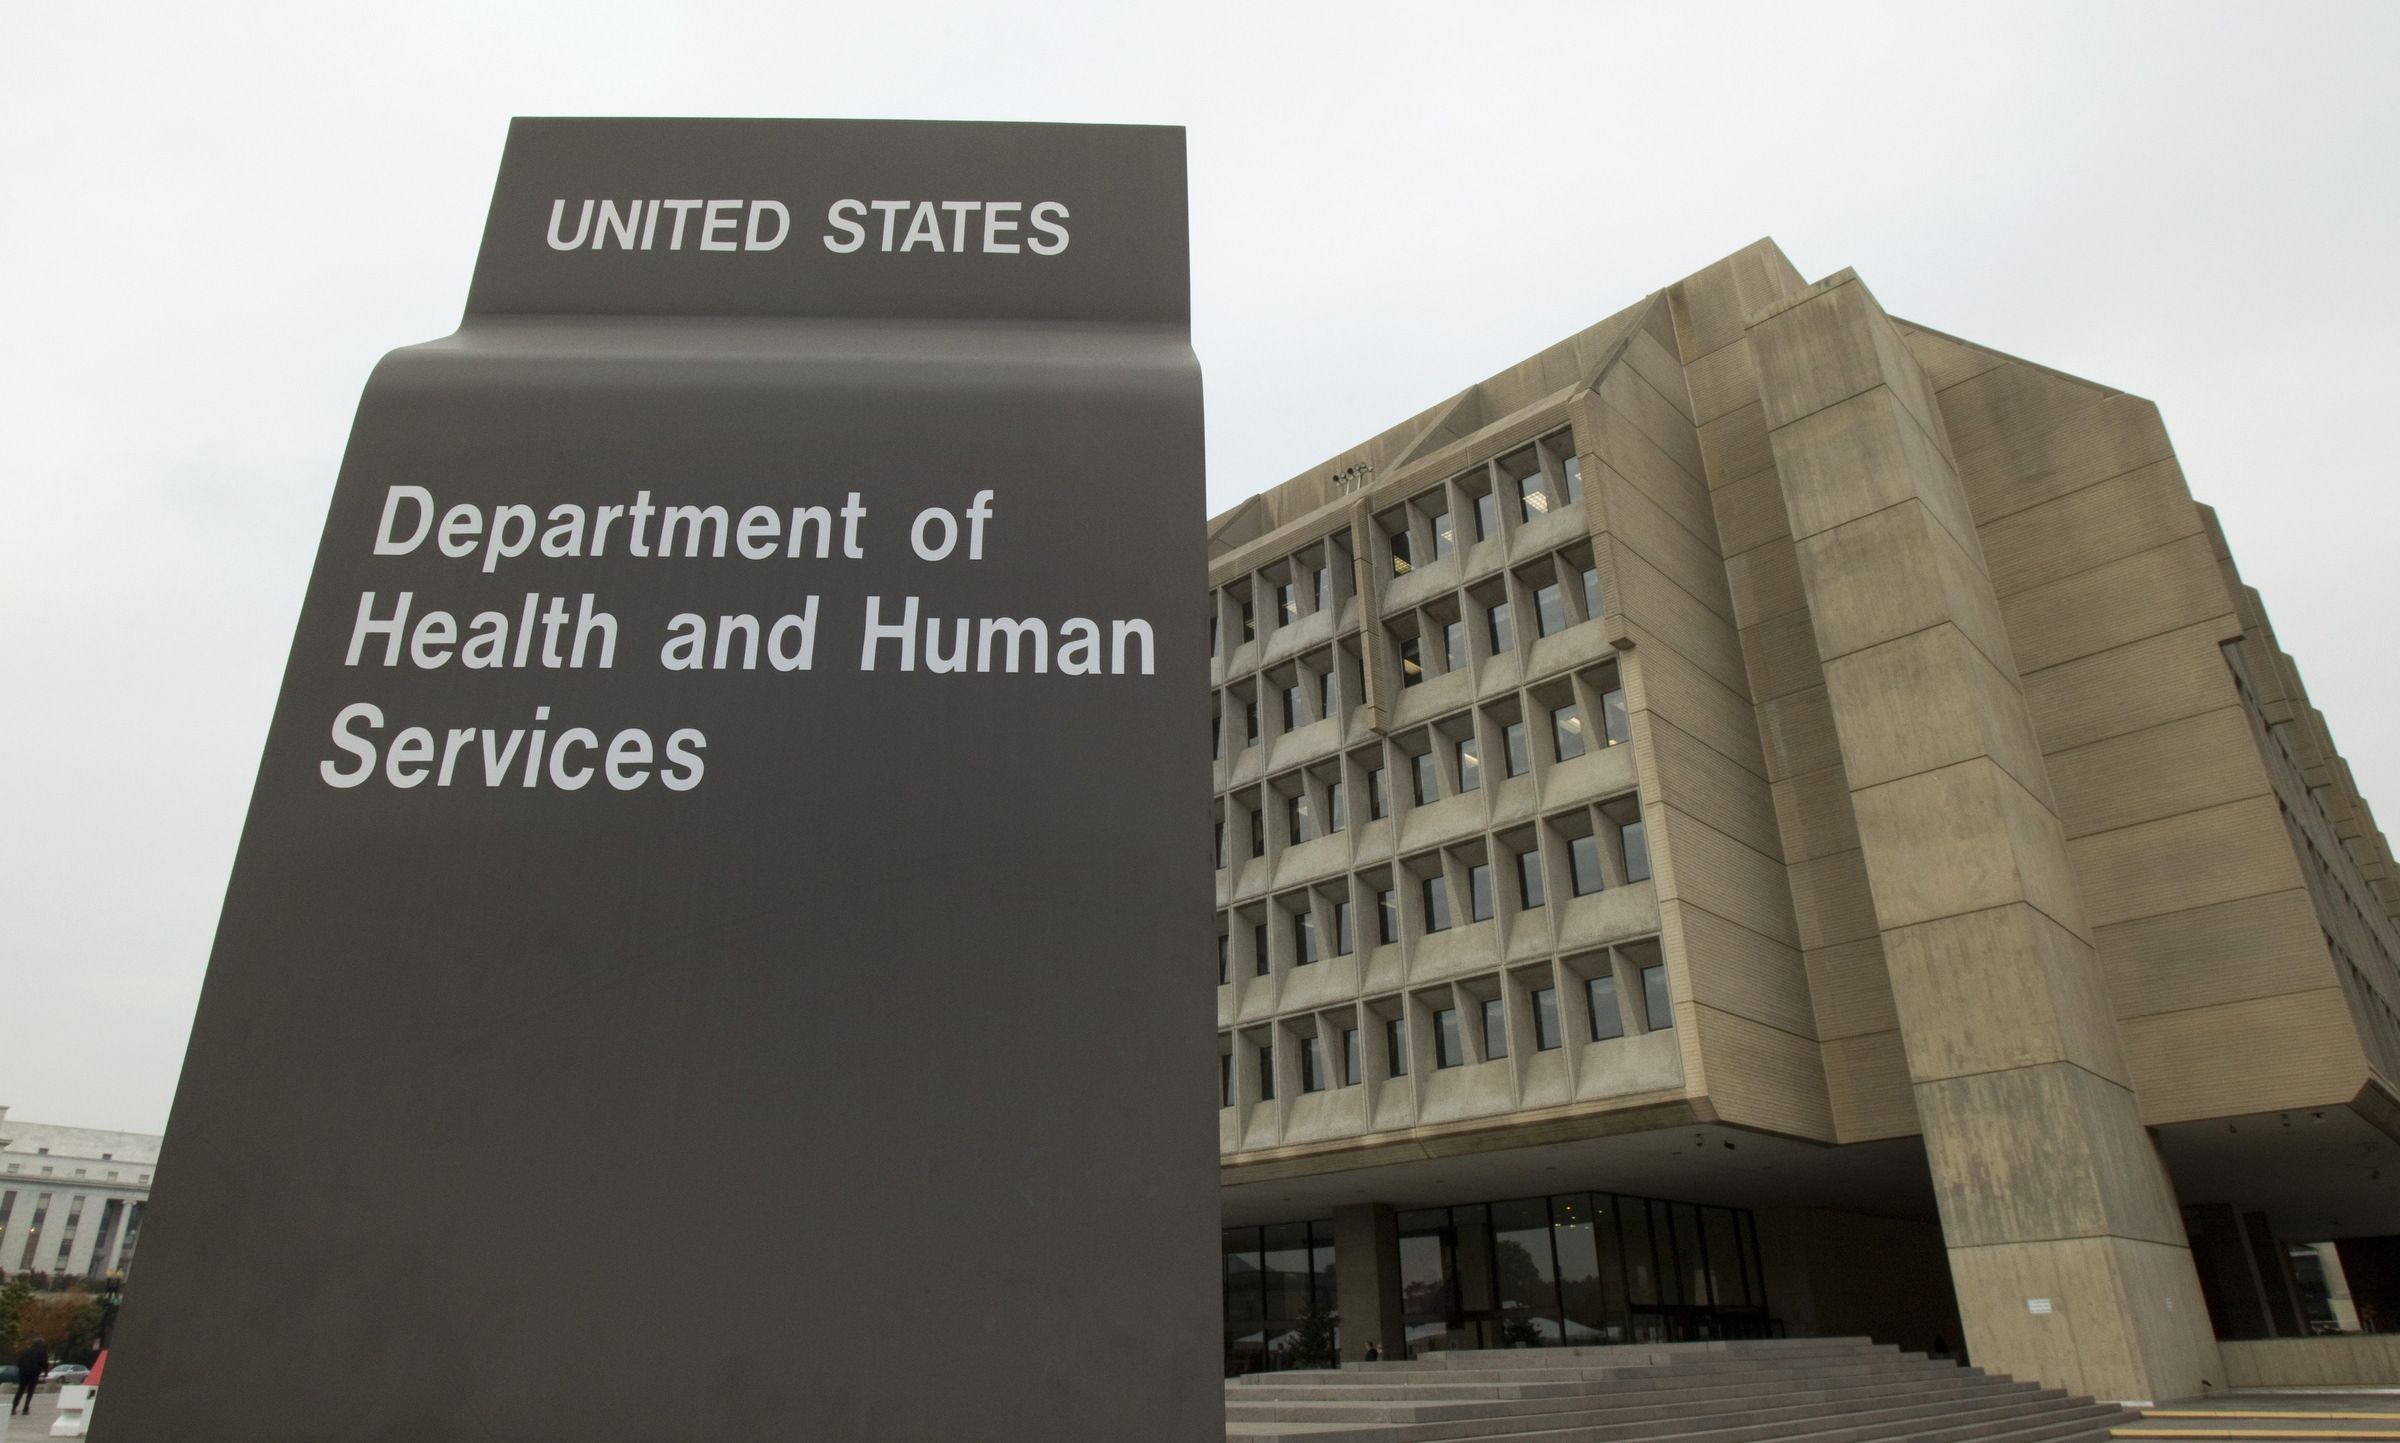 The U.S. Department of Health and Human Services (HHS) is